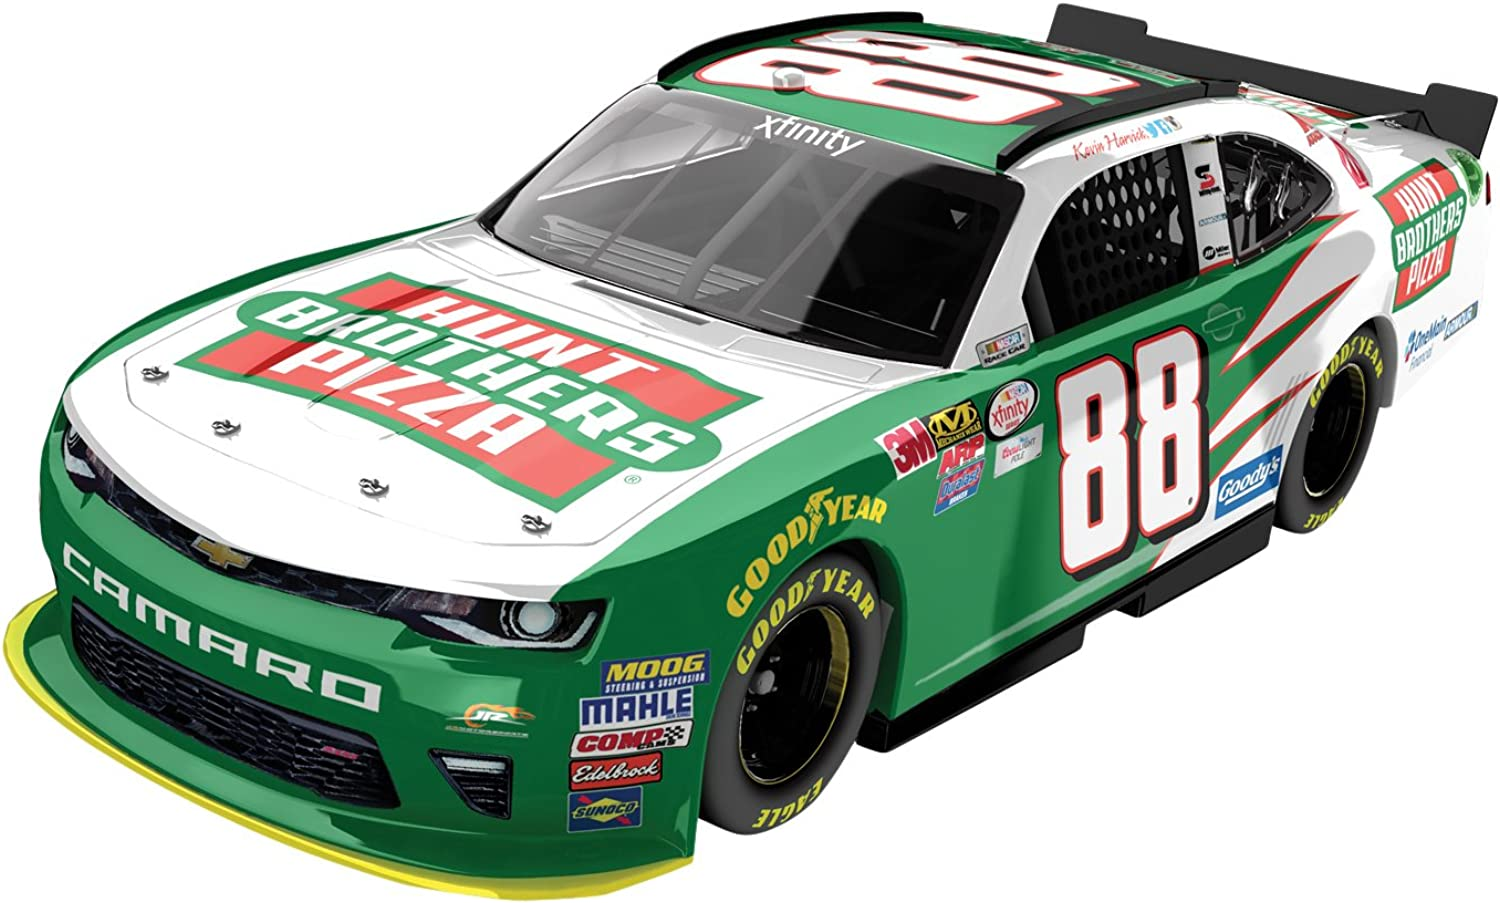 Lionel Racing Kevin Harvick  88 Hunts Bredher's Pizza Xfinity 2016 Chevrolet Camaro NASCAR Diecast Car (1 24 Scale)